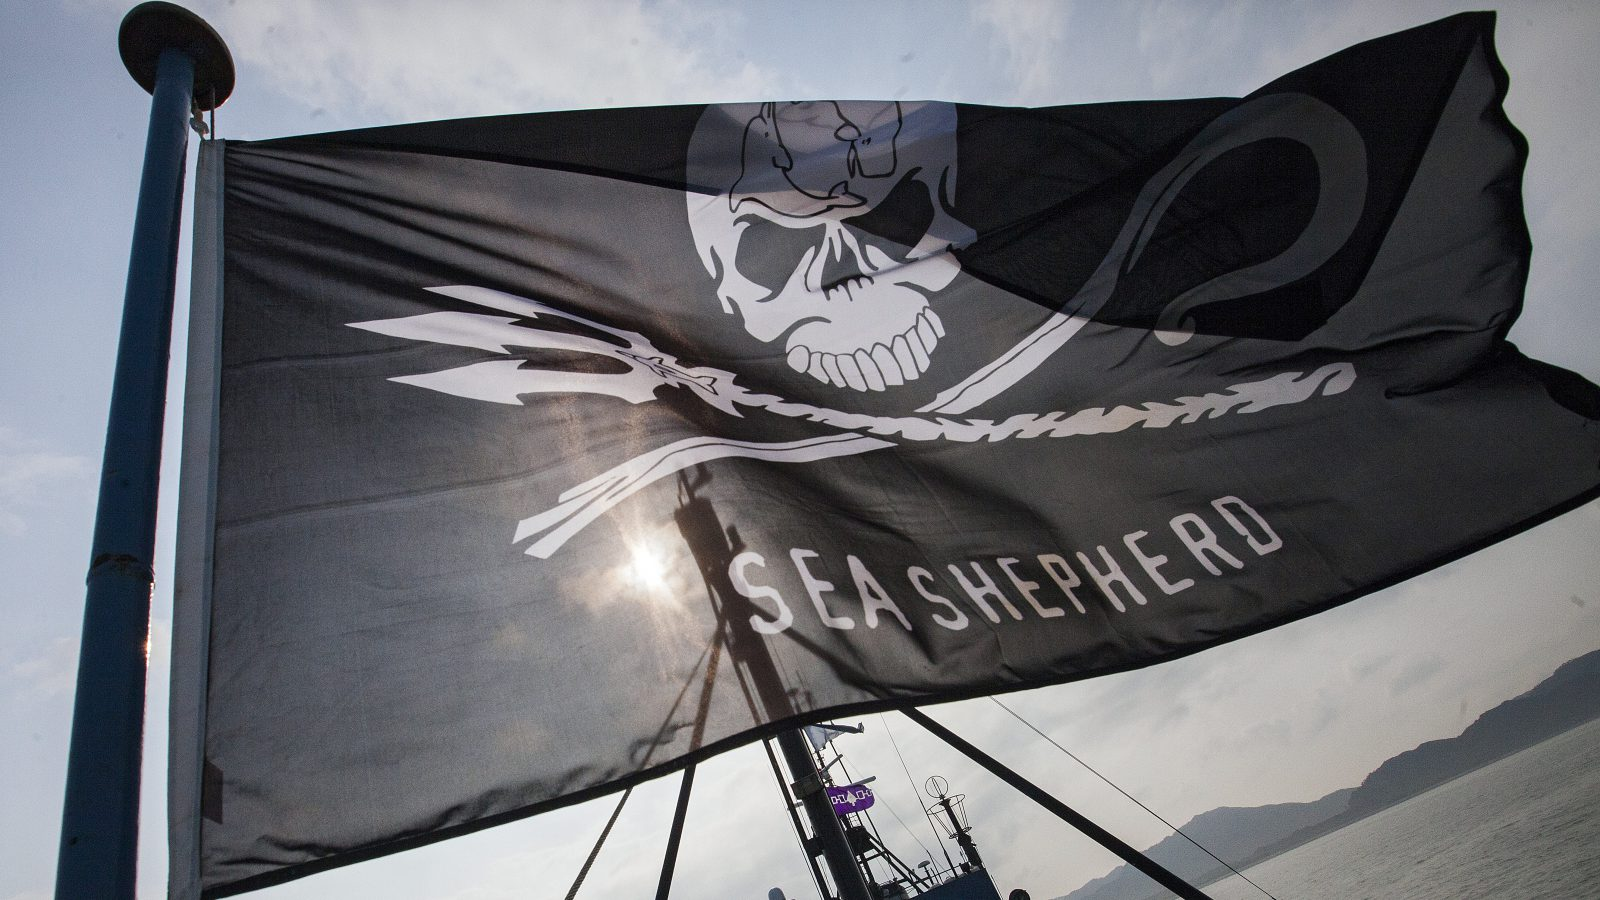 A skull and crossbones flag flies on the bow of the Steve Irwin, the flagship vessel of animal protection activists Sea Shepherd Conservation Society, moors in Hong Kong waters, Hong Kong, China, 06 April 2016. The Steve Irwin is in the Southern Chinese city after a lengthy international pursuit of a fleet of five mainland Chinese fishing vessels that were engaged in illegal driftnet fishing.